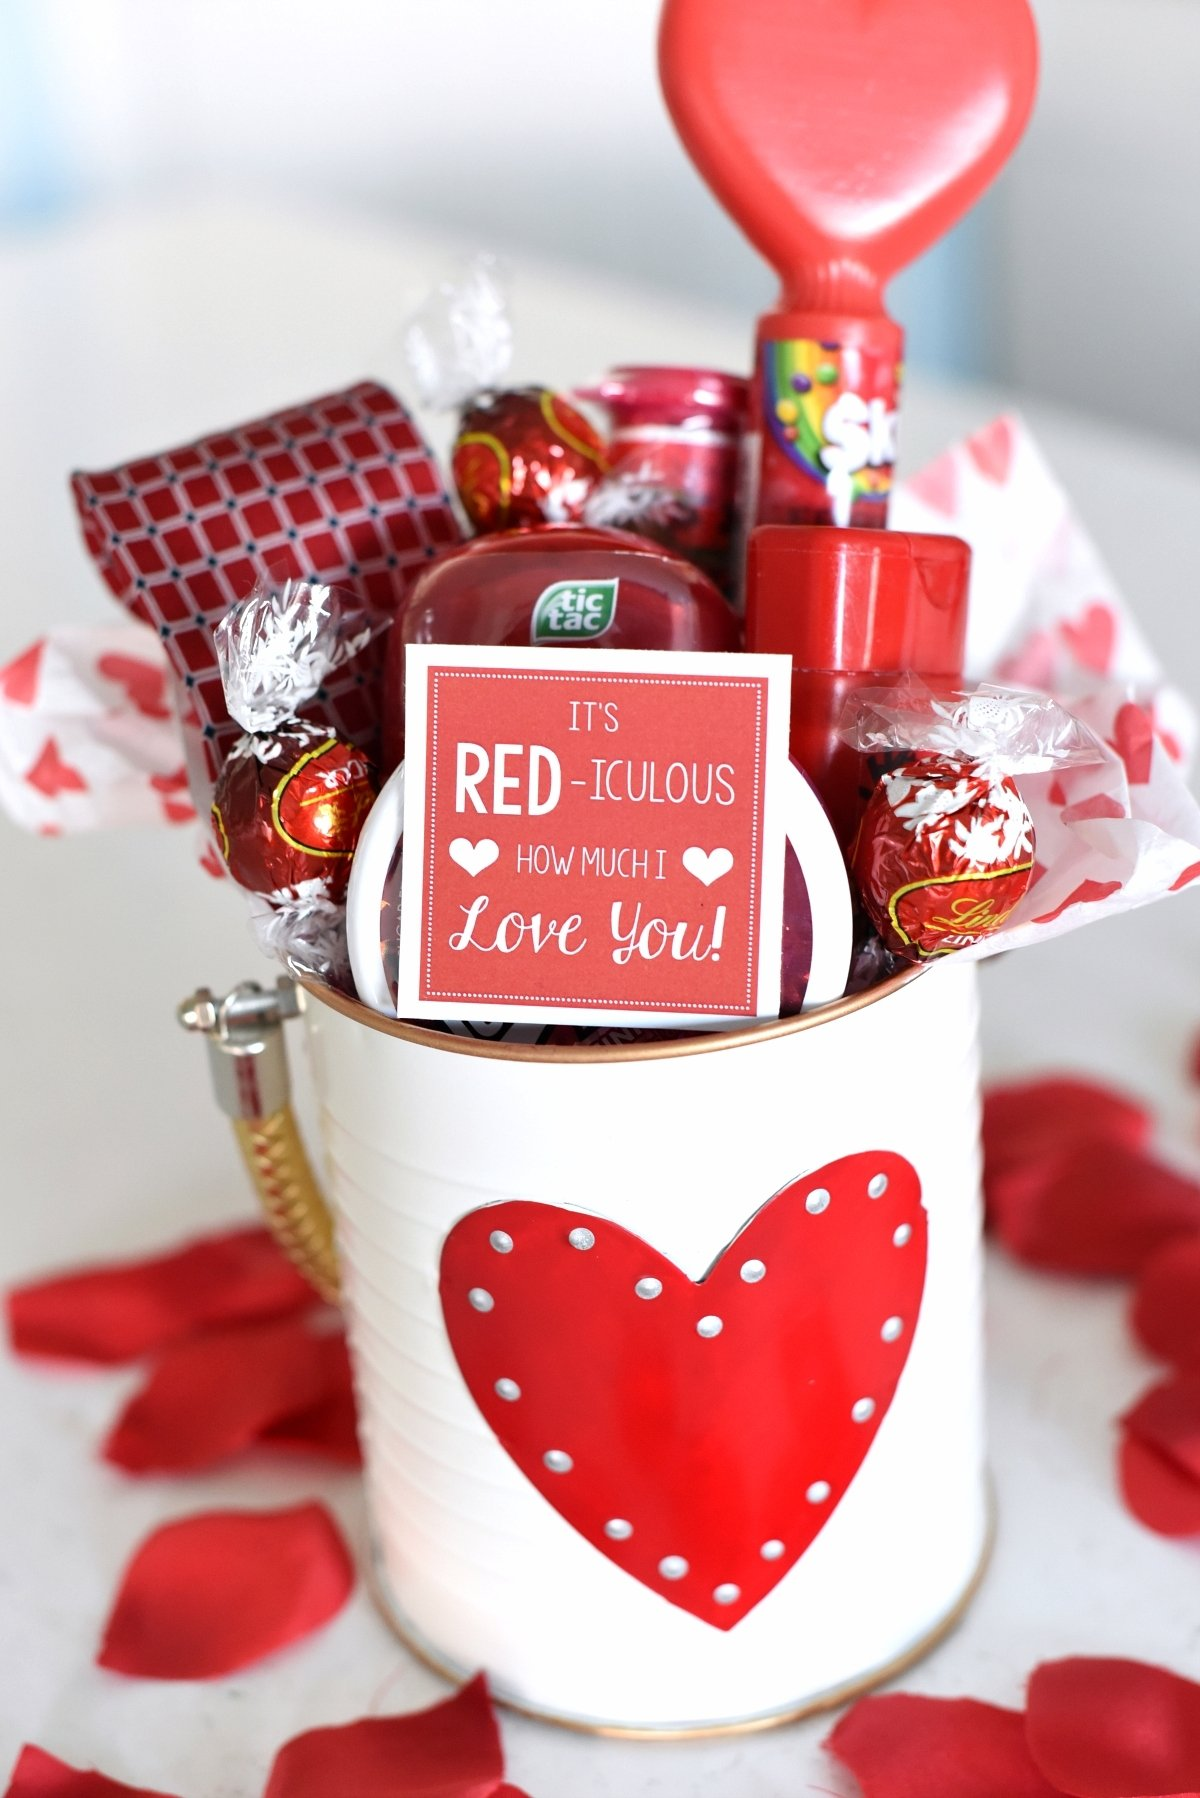 10 Great Valentine Day Ideas For Husband cute valentines day gift idea red iculous basket 7 2020